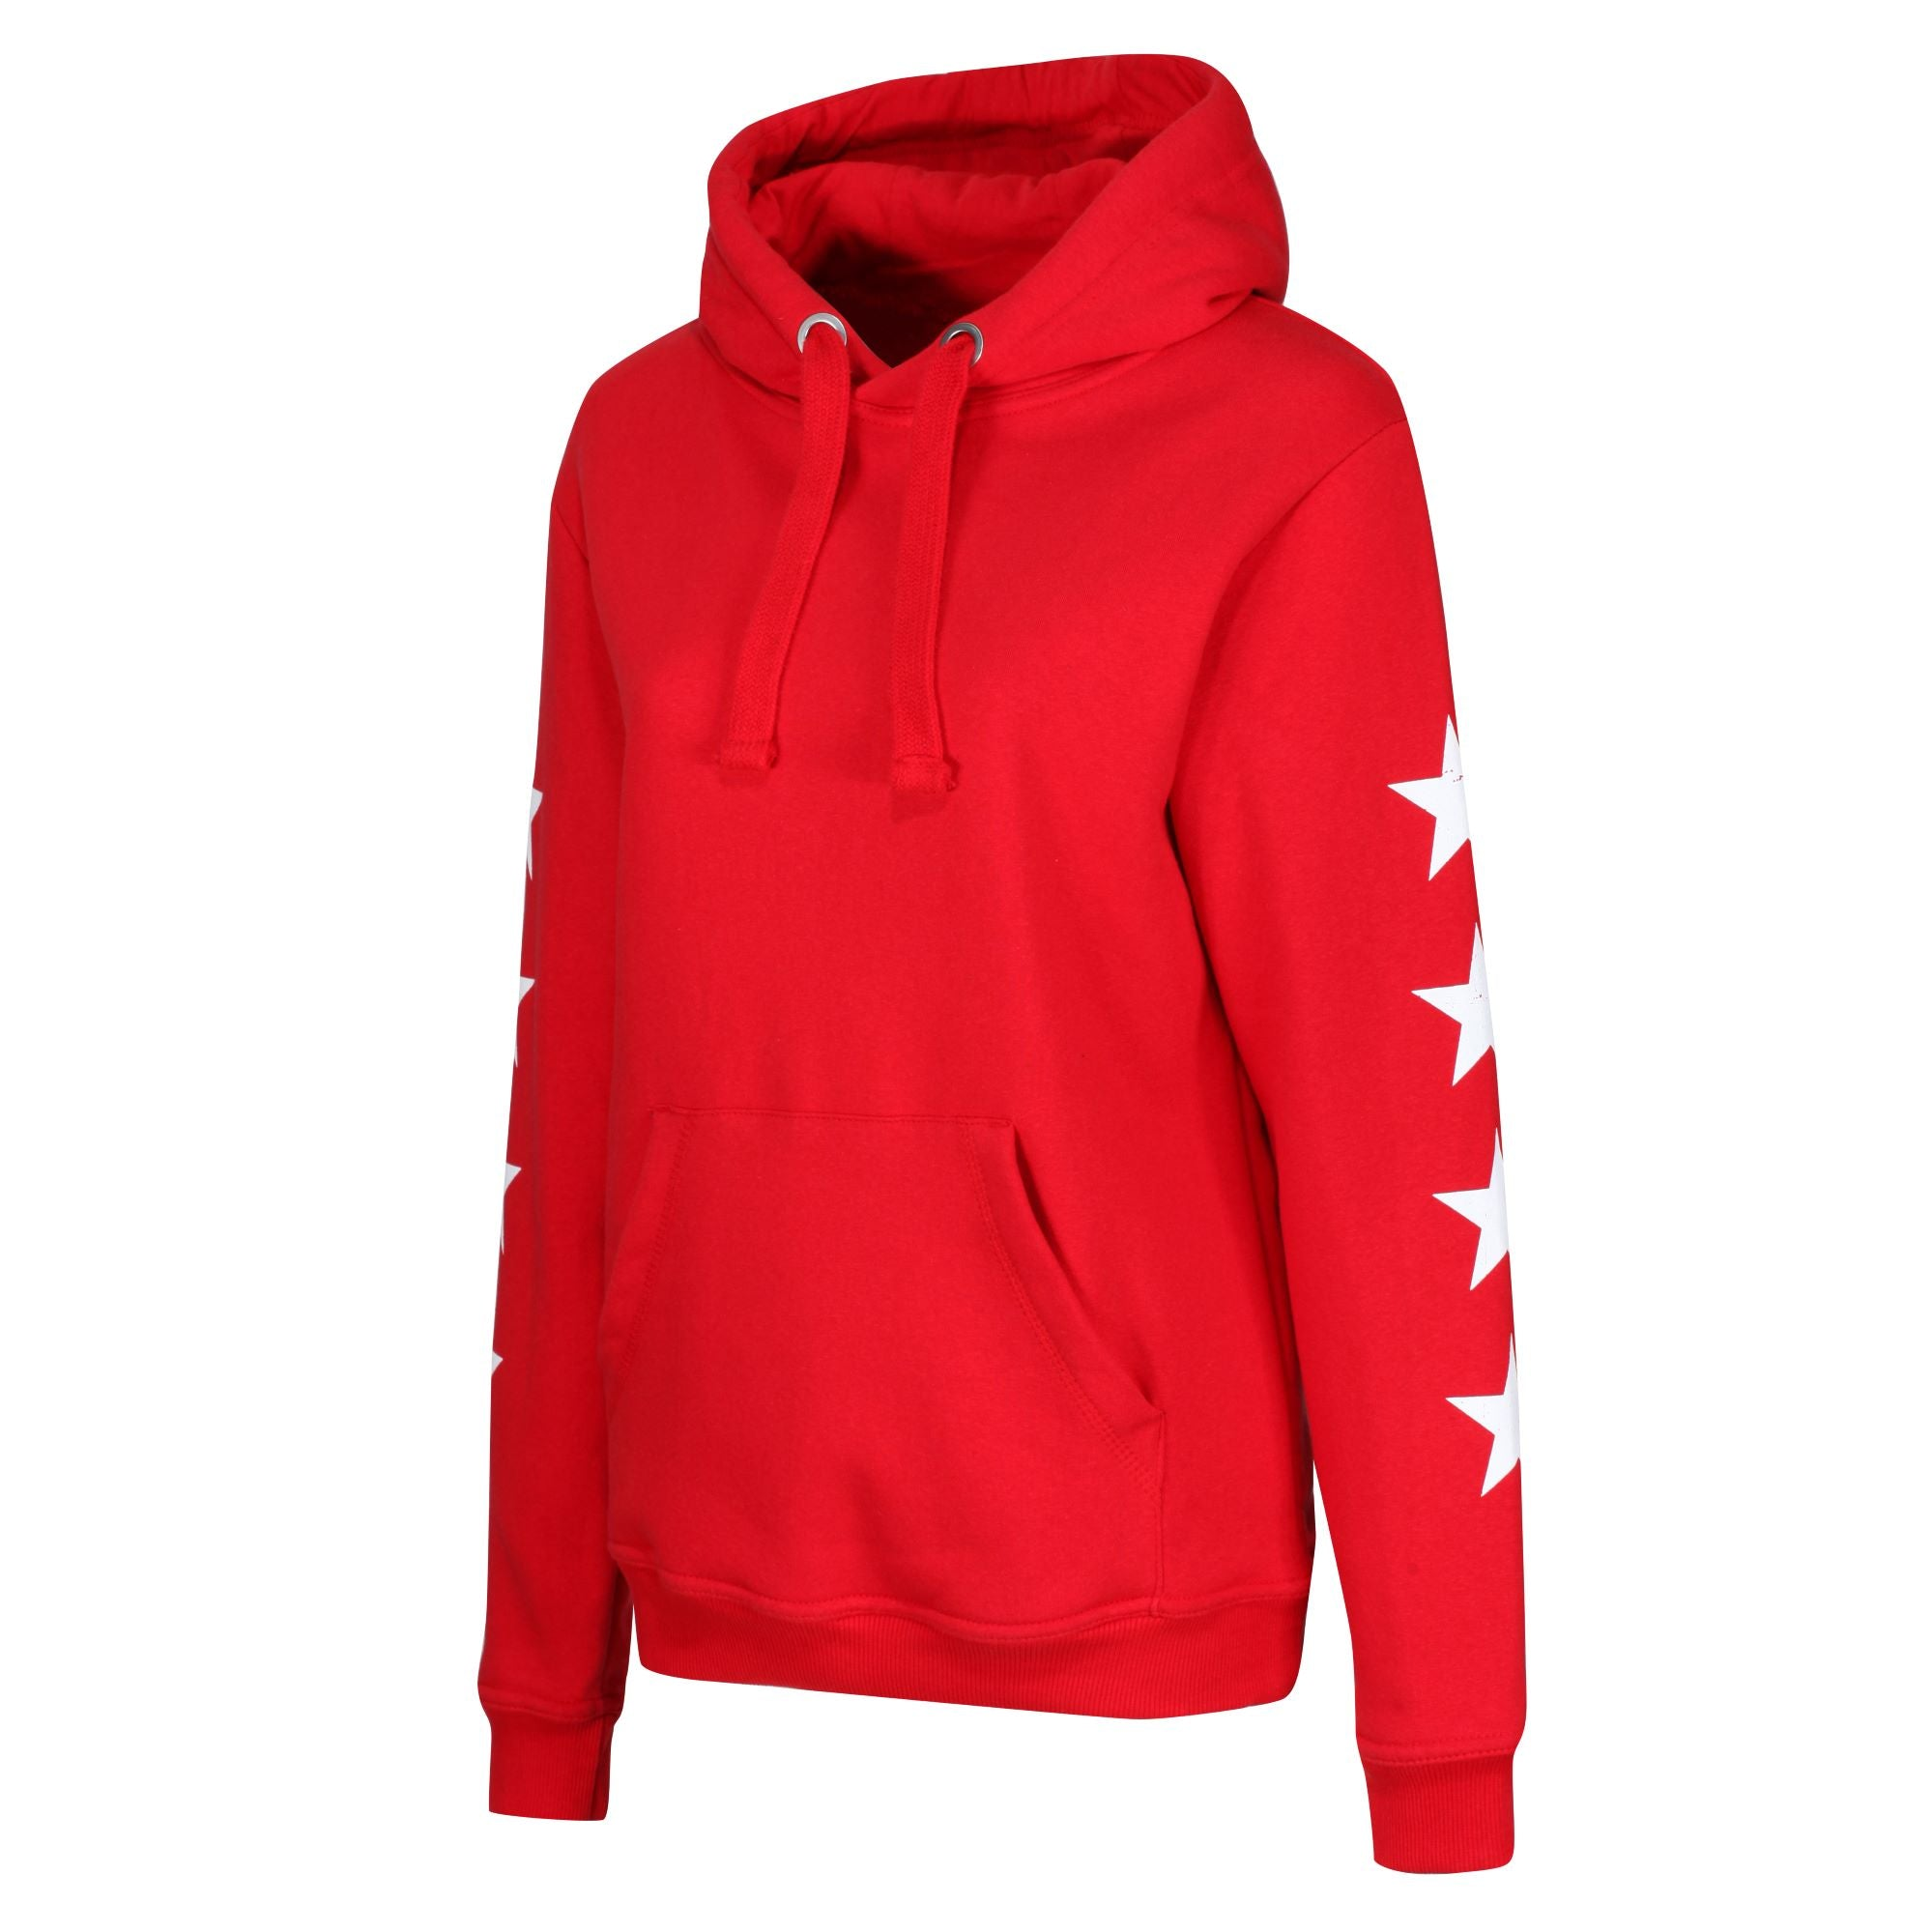 The STARS Heavyweight Hoodie- Red